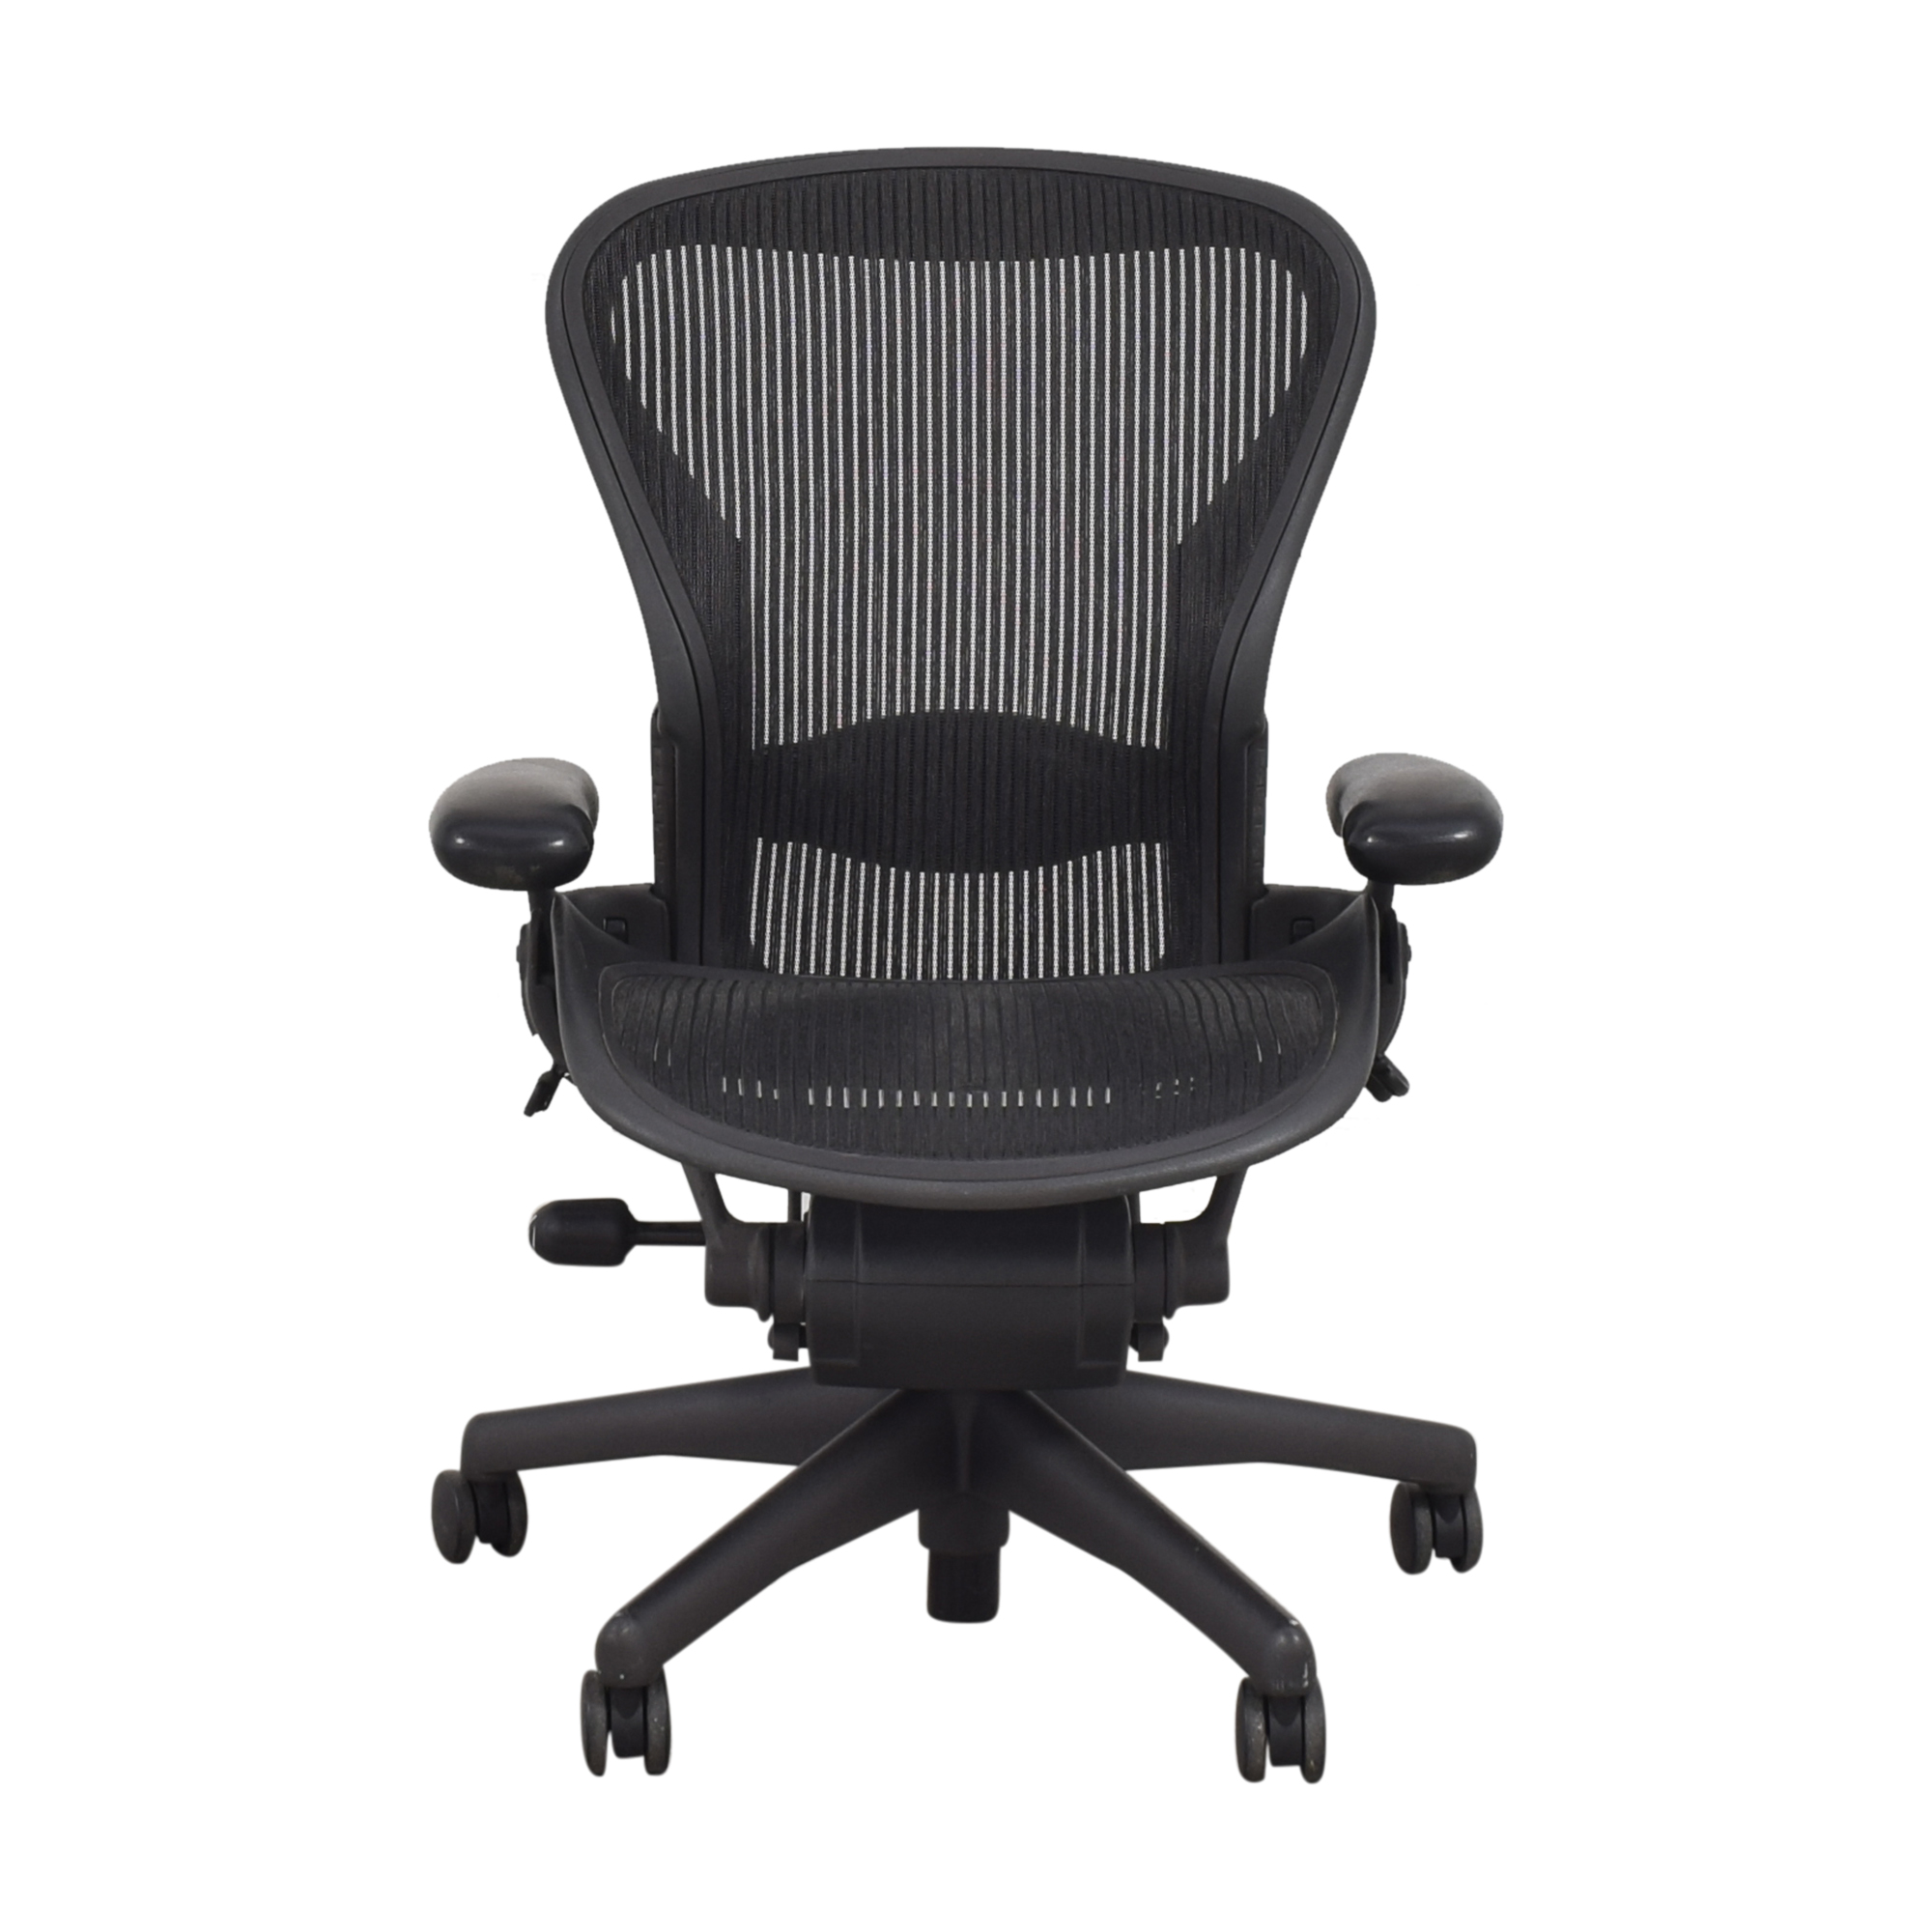 buy Herman Miller Herman Miller Aeron Size B Swivel Desk Chair online